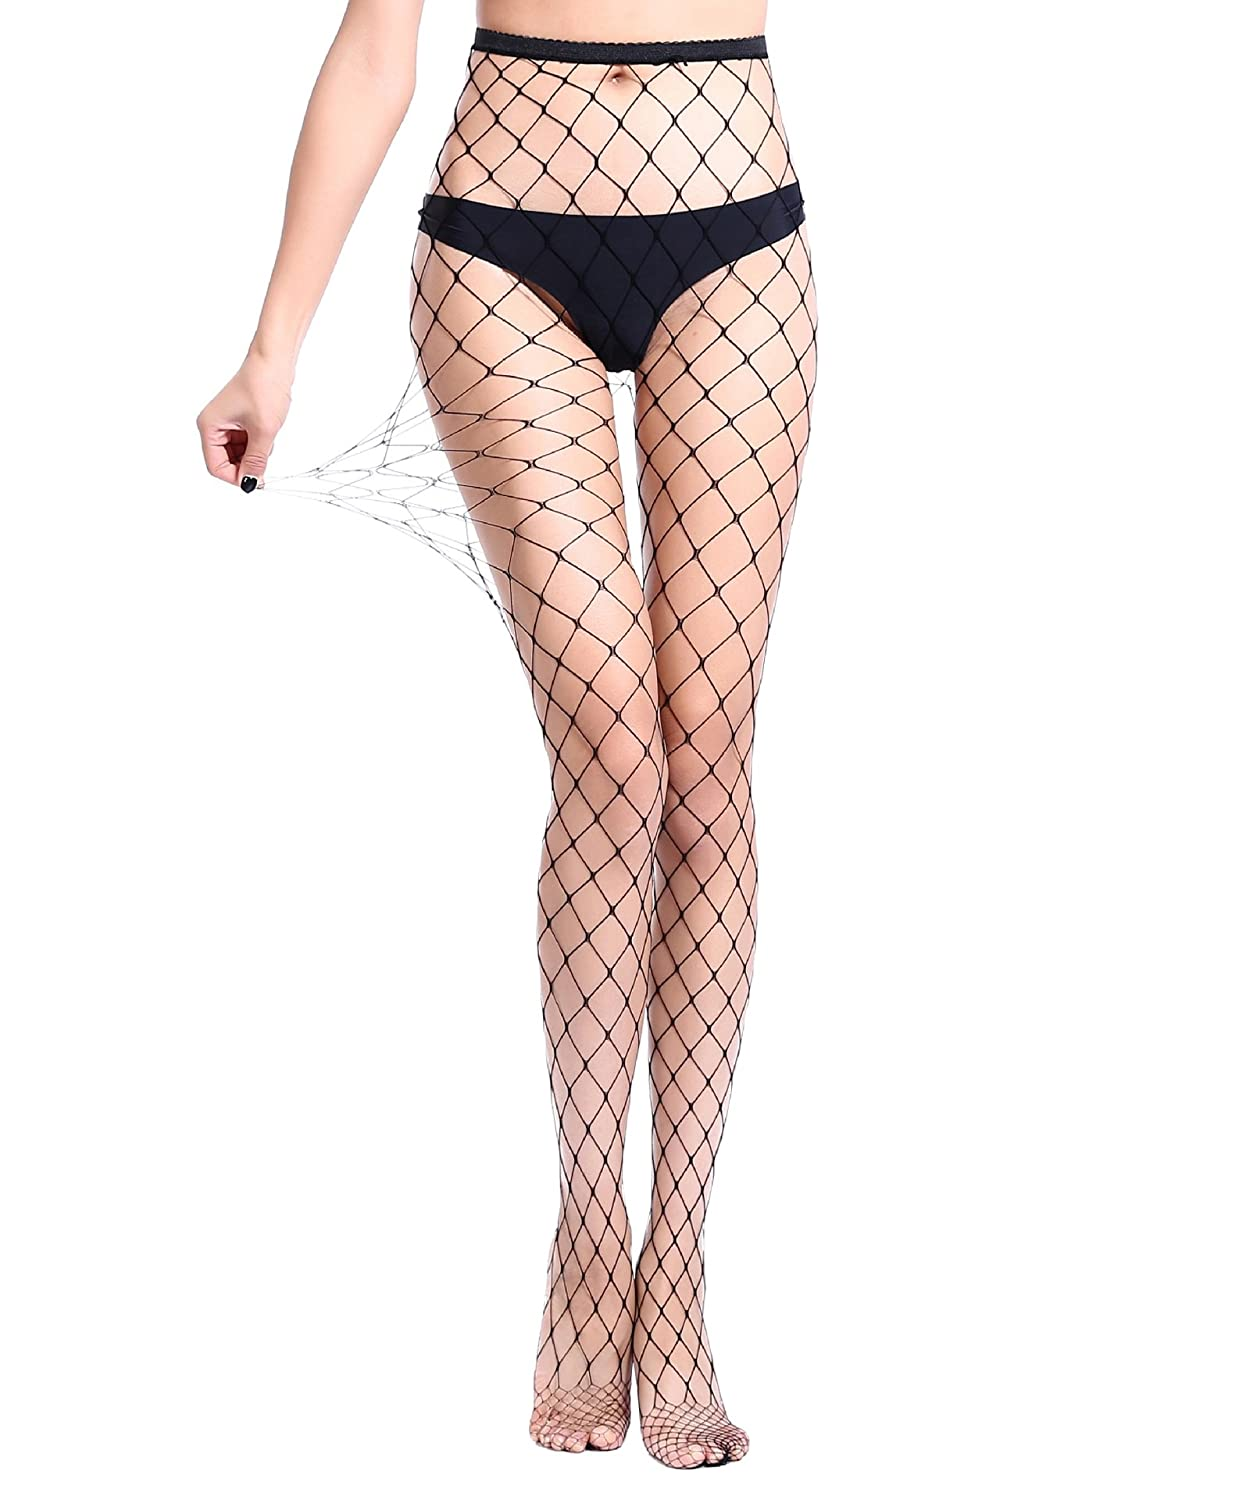 Top 10 wholesale Pantyhose Colors - Chinabrands.com